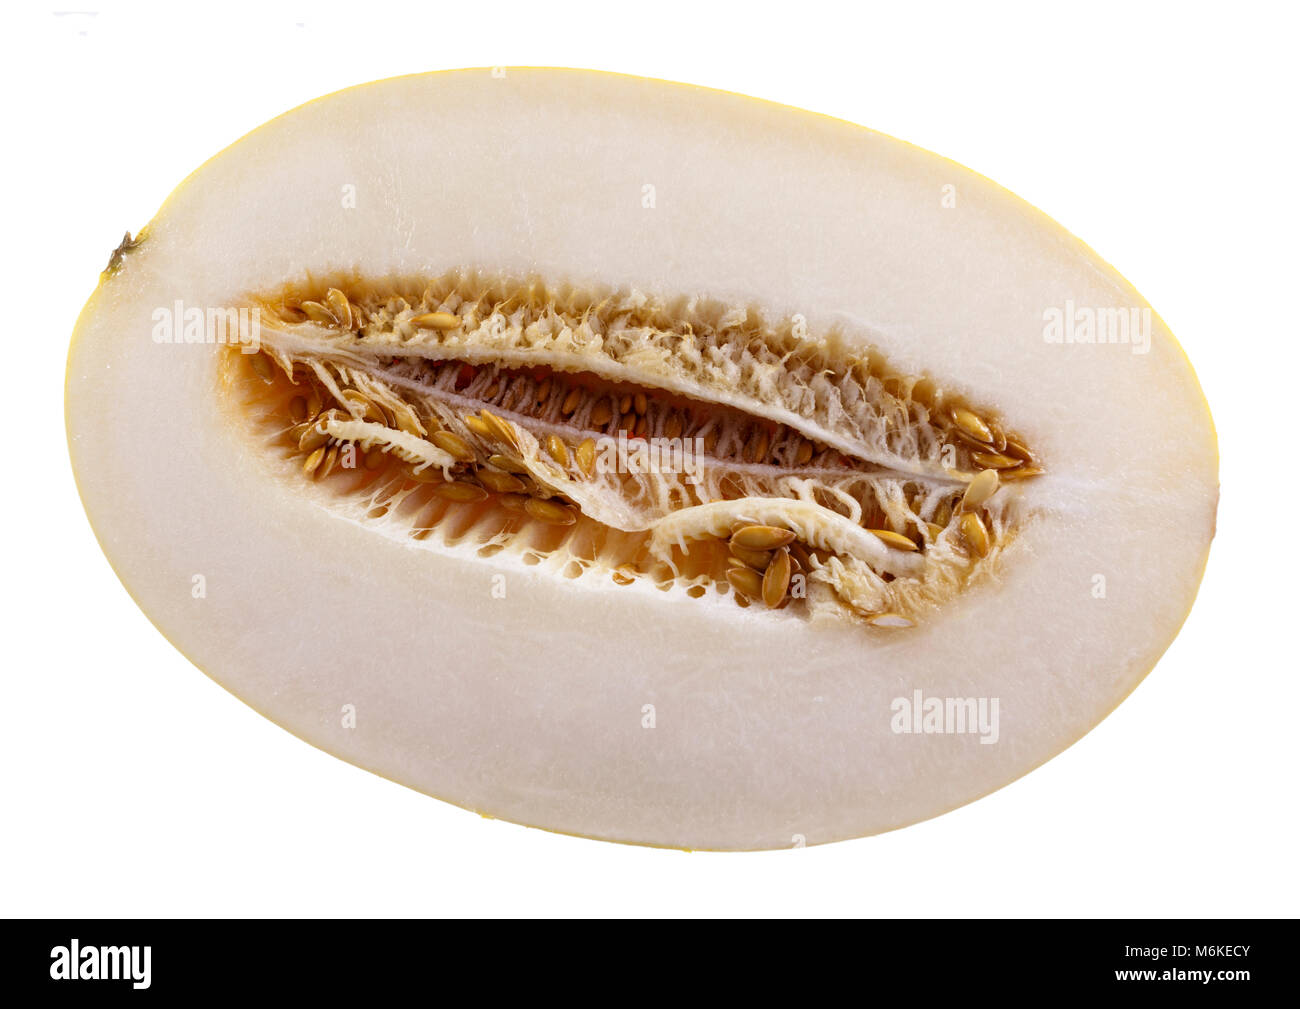 The Golden melon, also called Hello Melon, is a refreshing, crispy and crunchy fruit, with an elliptical shape, - Stock Image